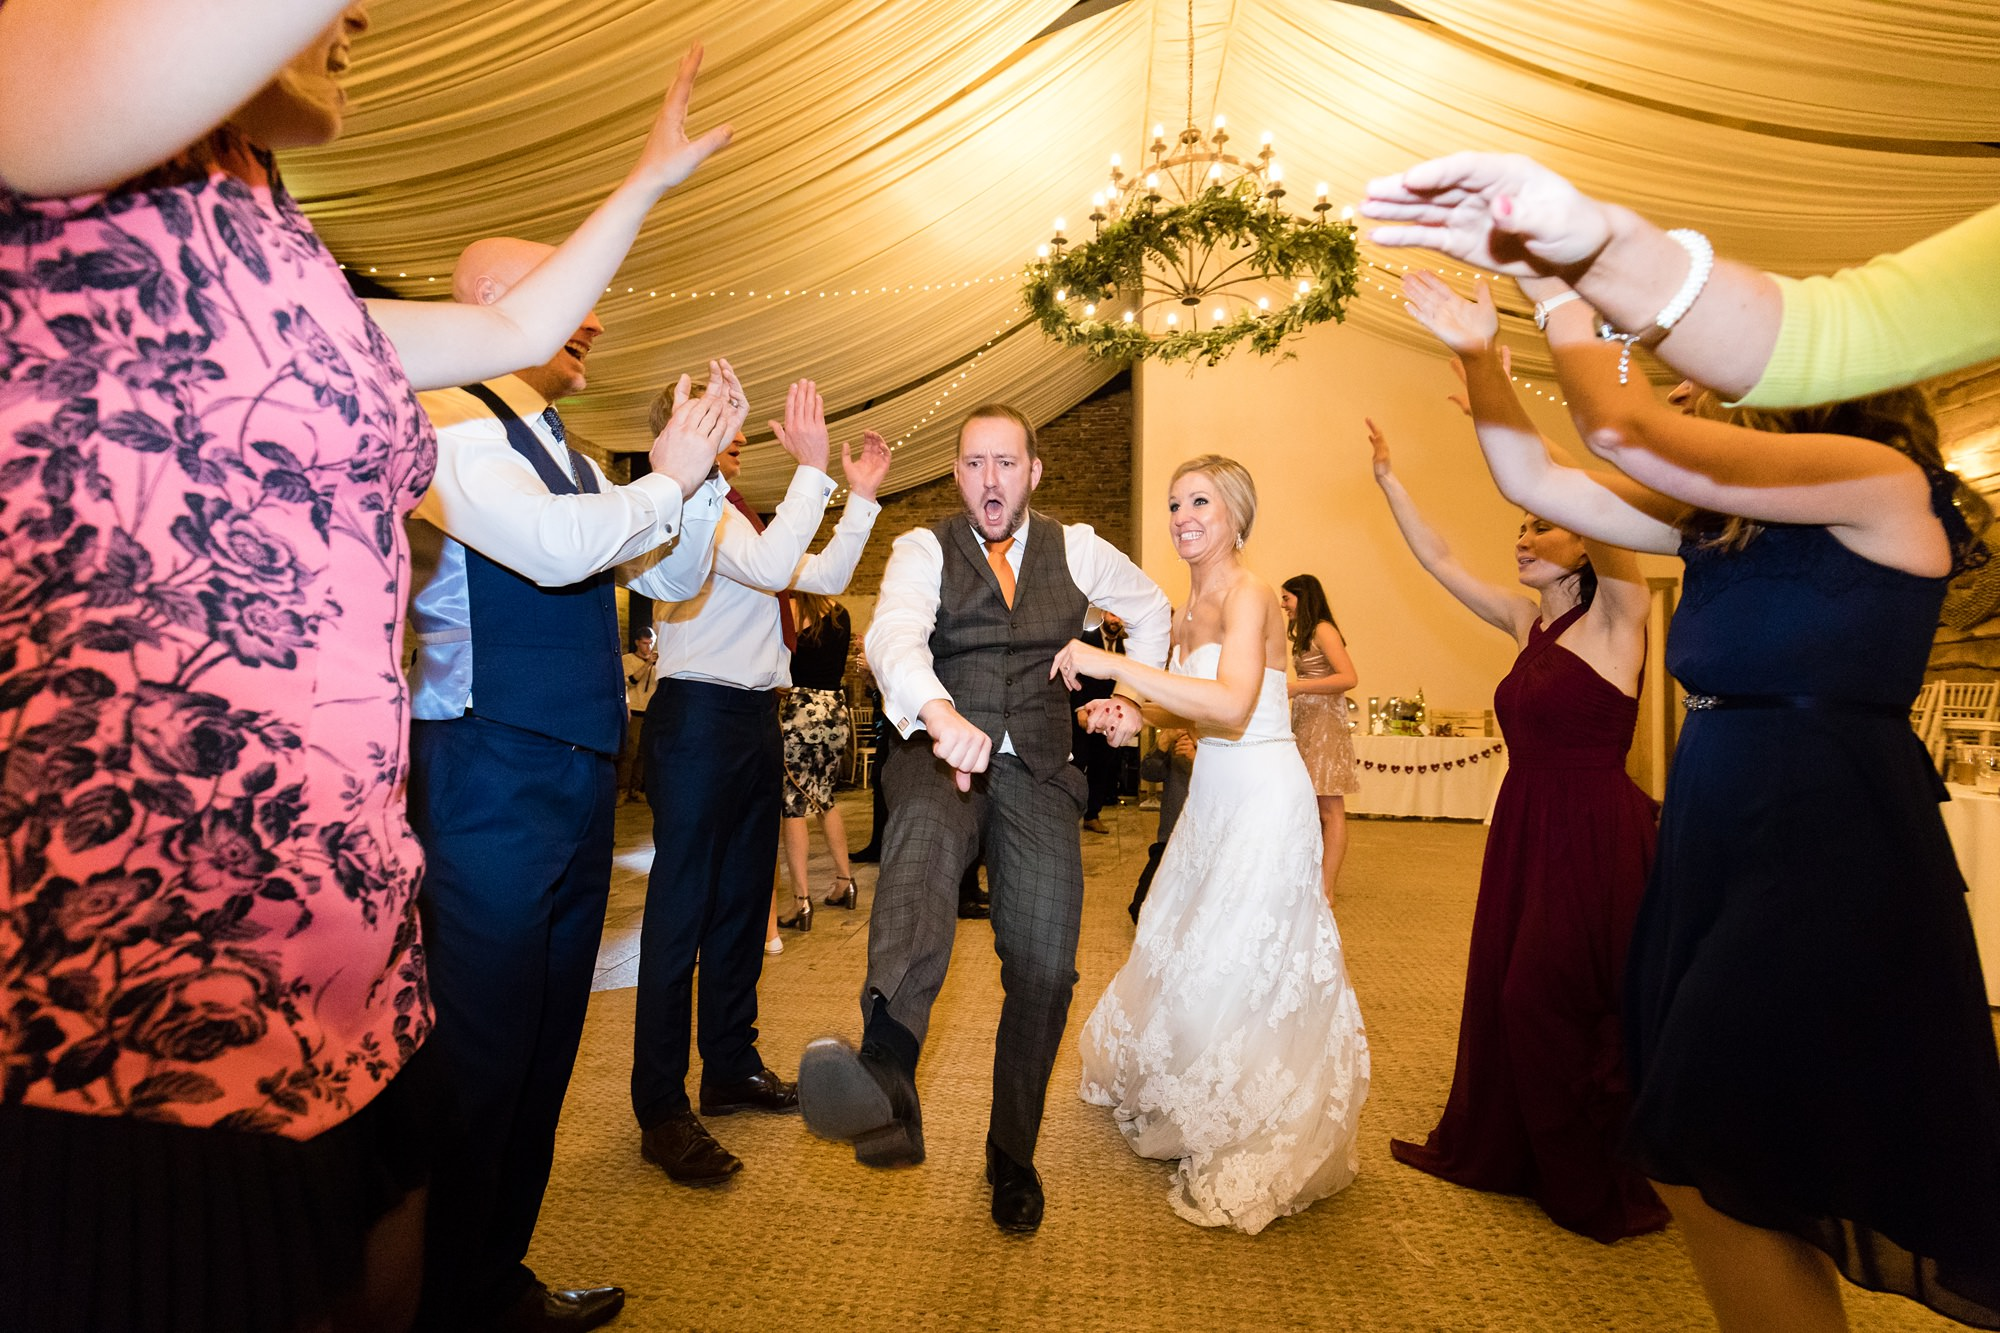 Bride and friend dance during party